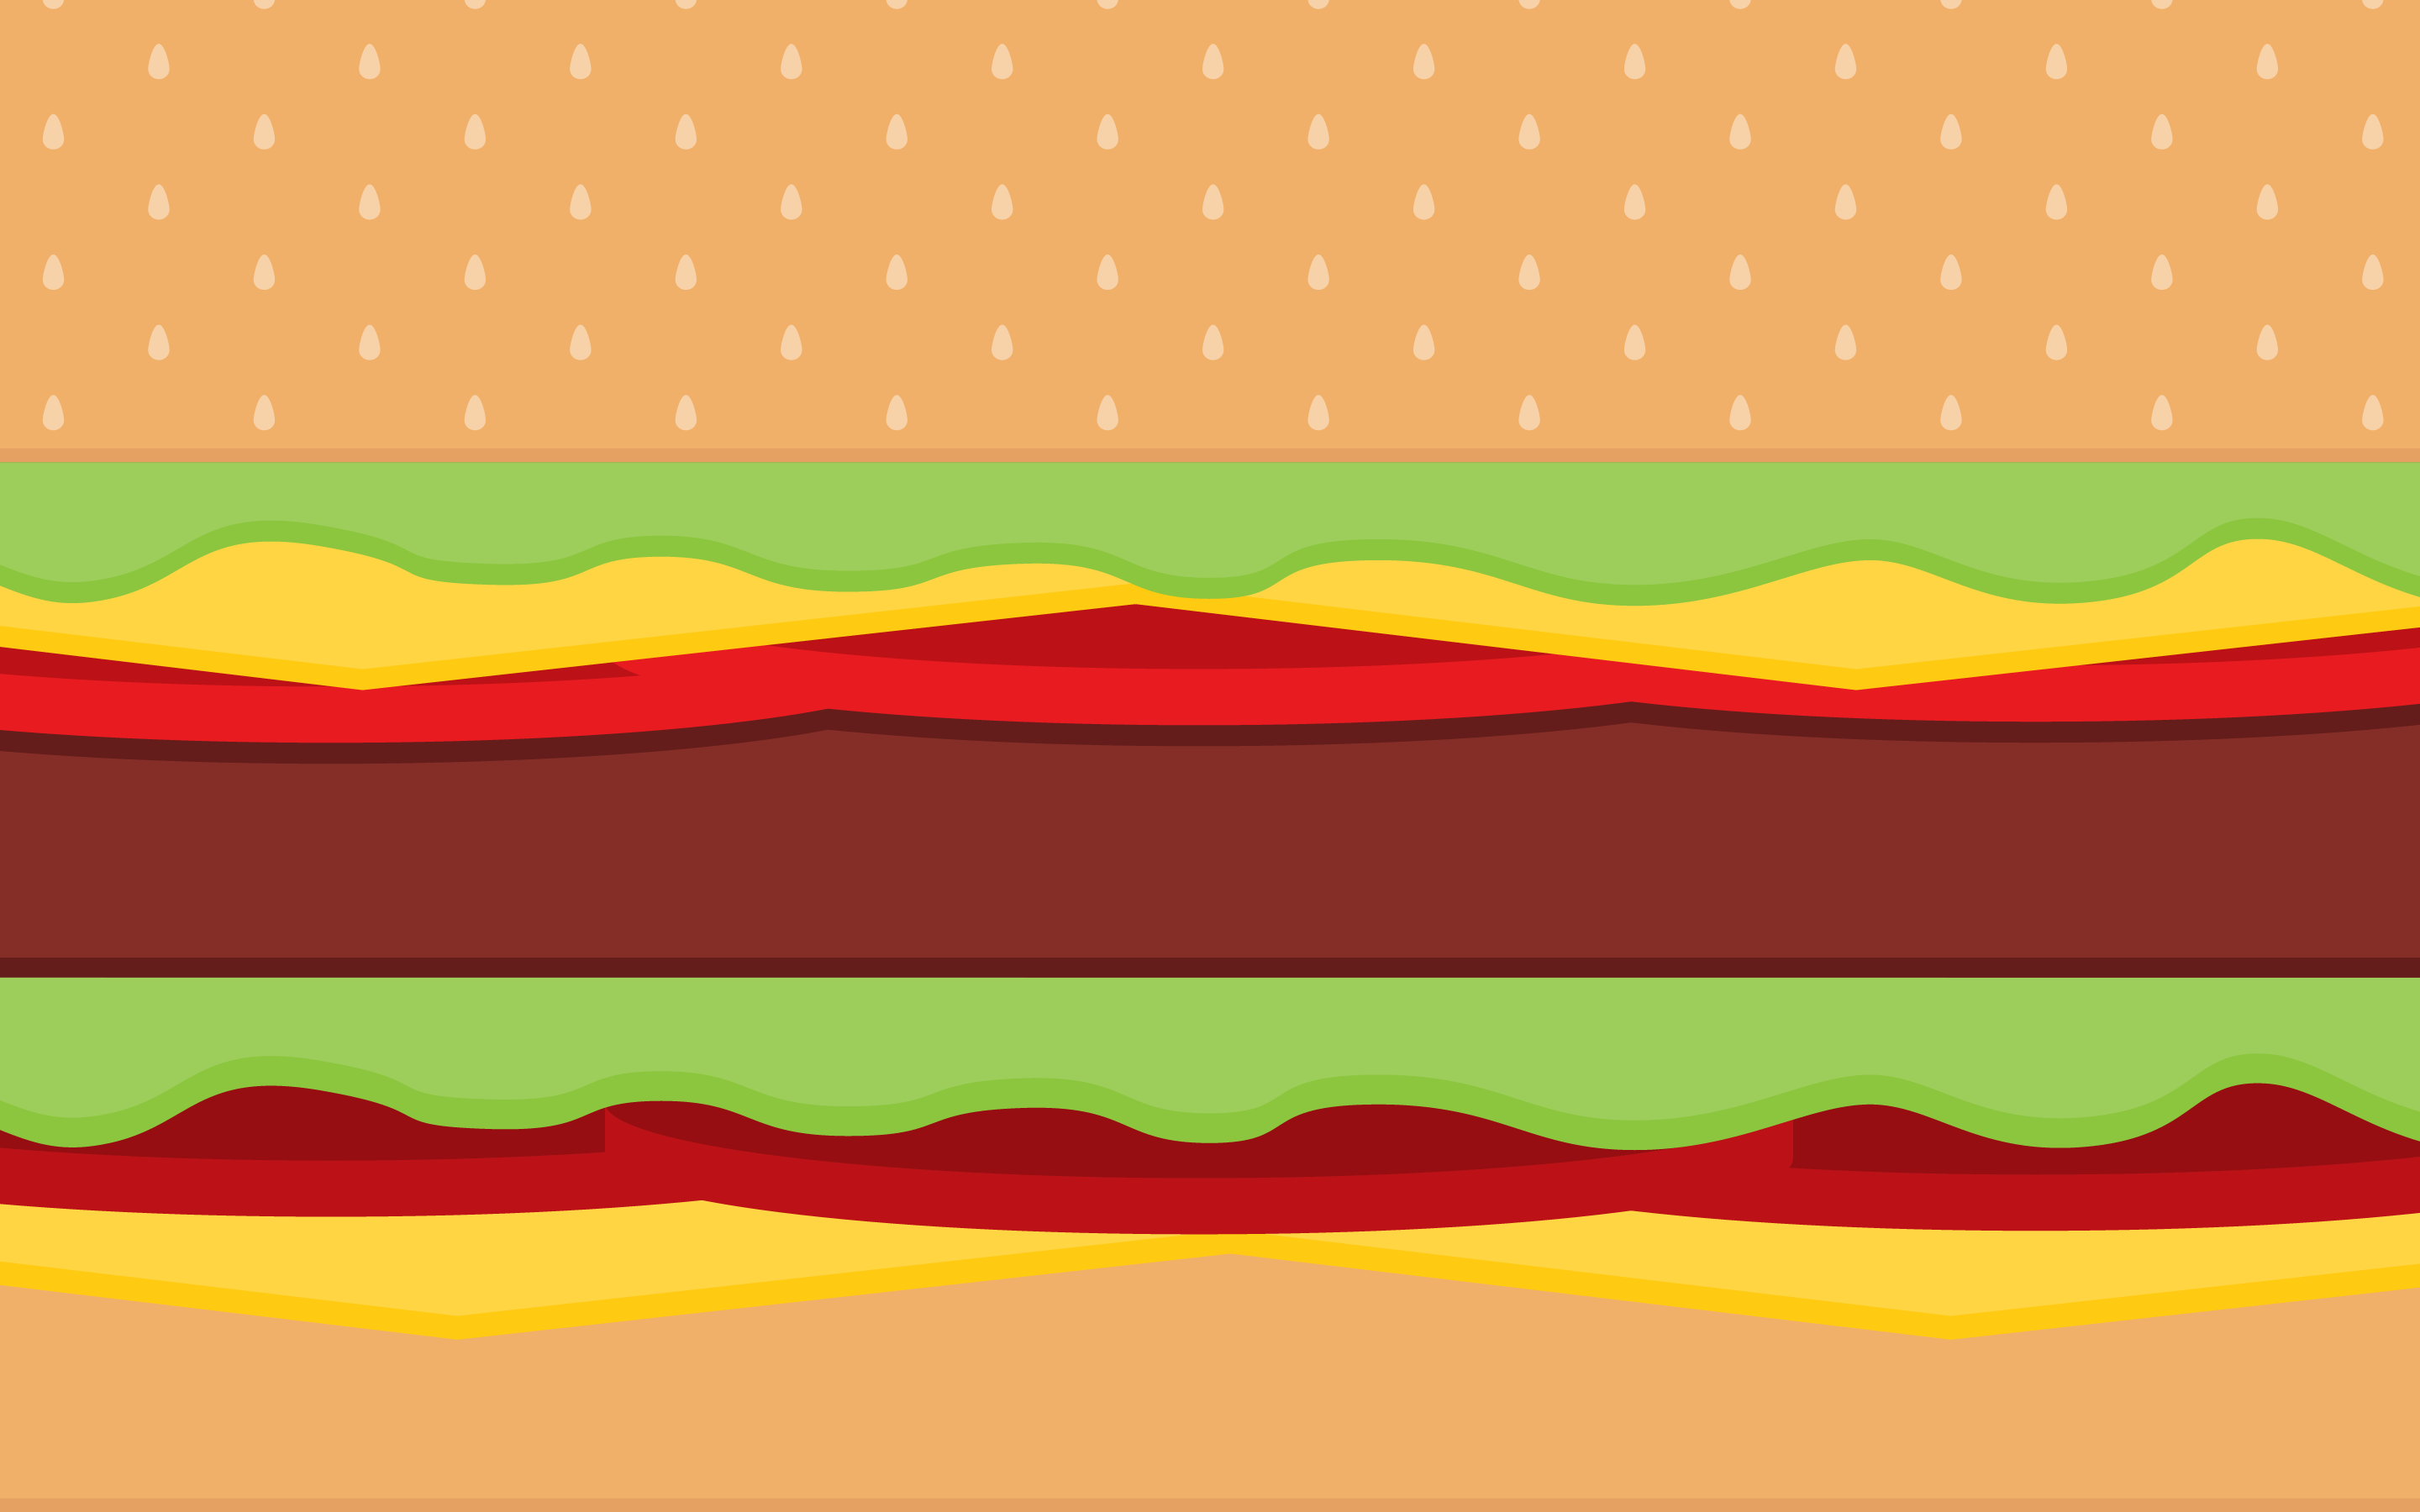 Burger HD Wallpapers, Desktop Pictures